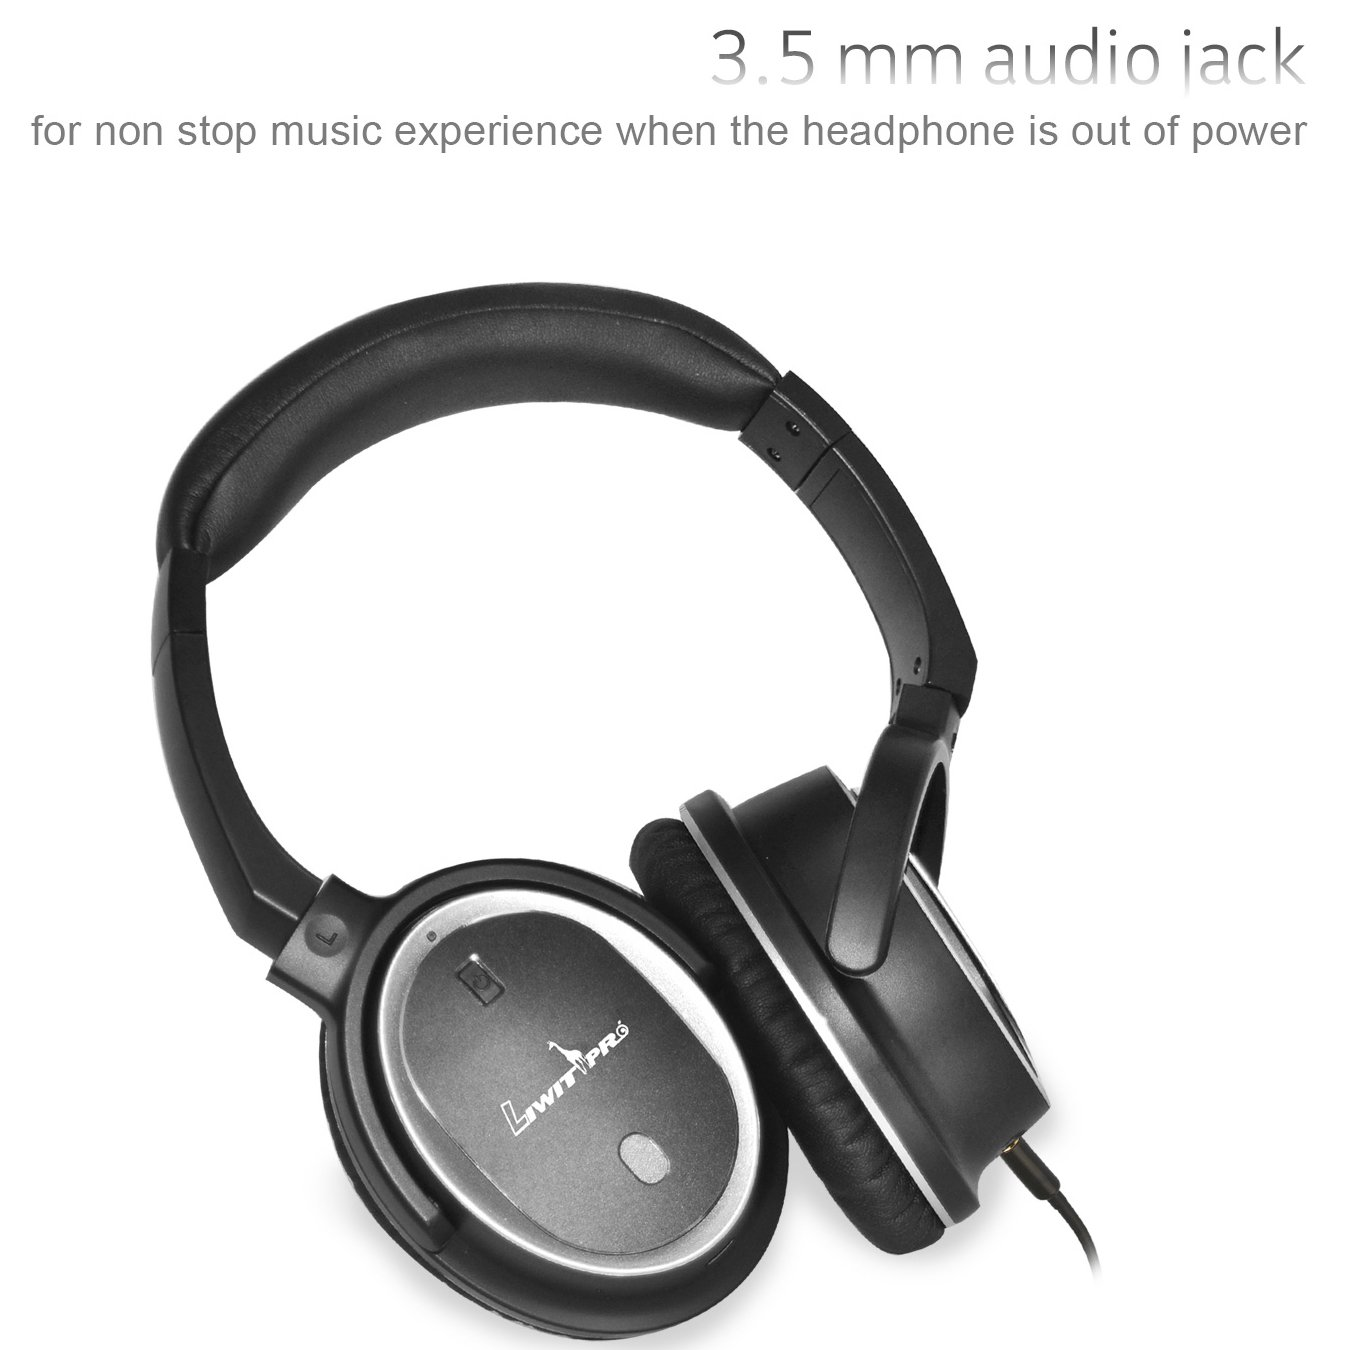 Active Noise Cancelling Bluetooth Headphone Liwithpro Wireless Over Ear Earphones with Microphone aptX Hi-Fi Deep Bass for Travel Work TV Computer Black